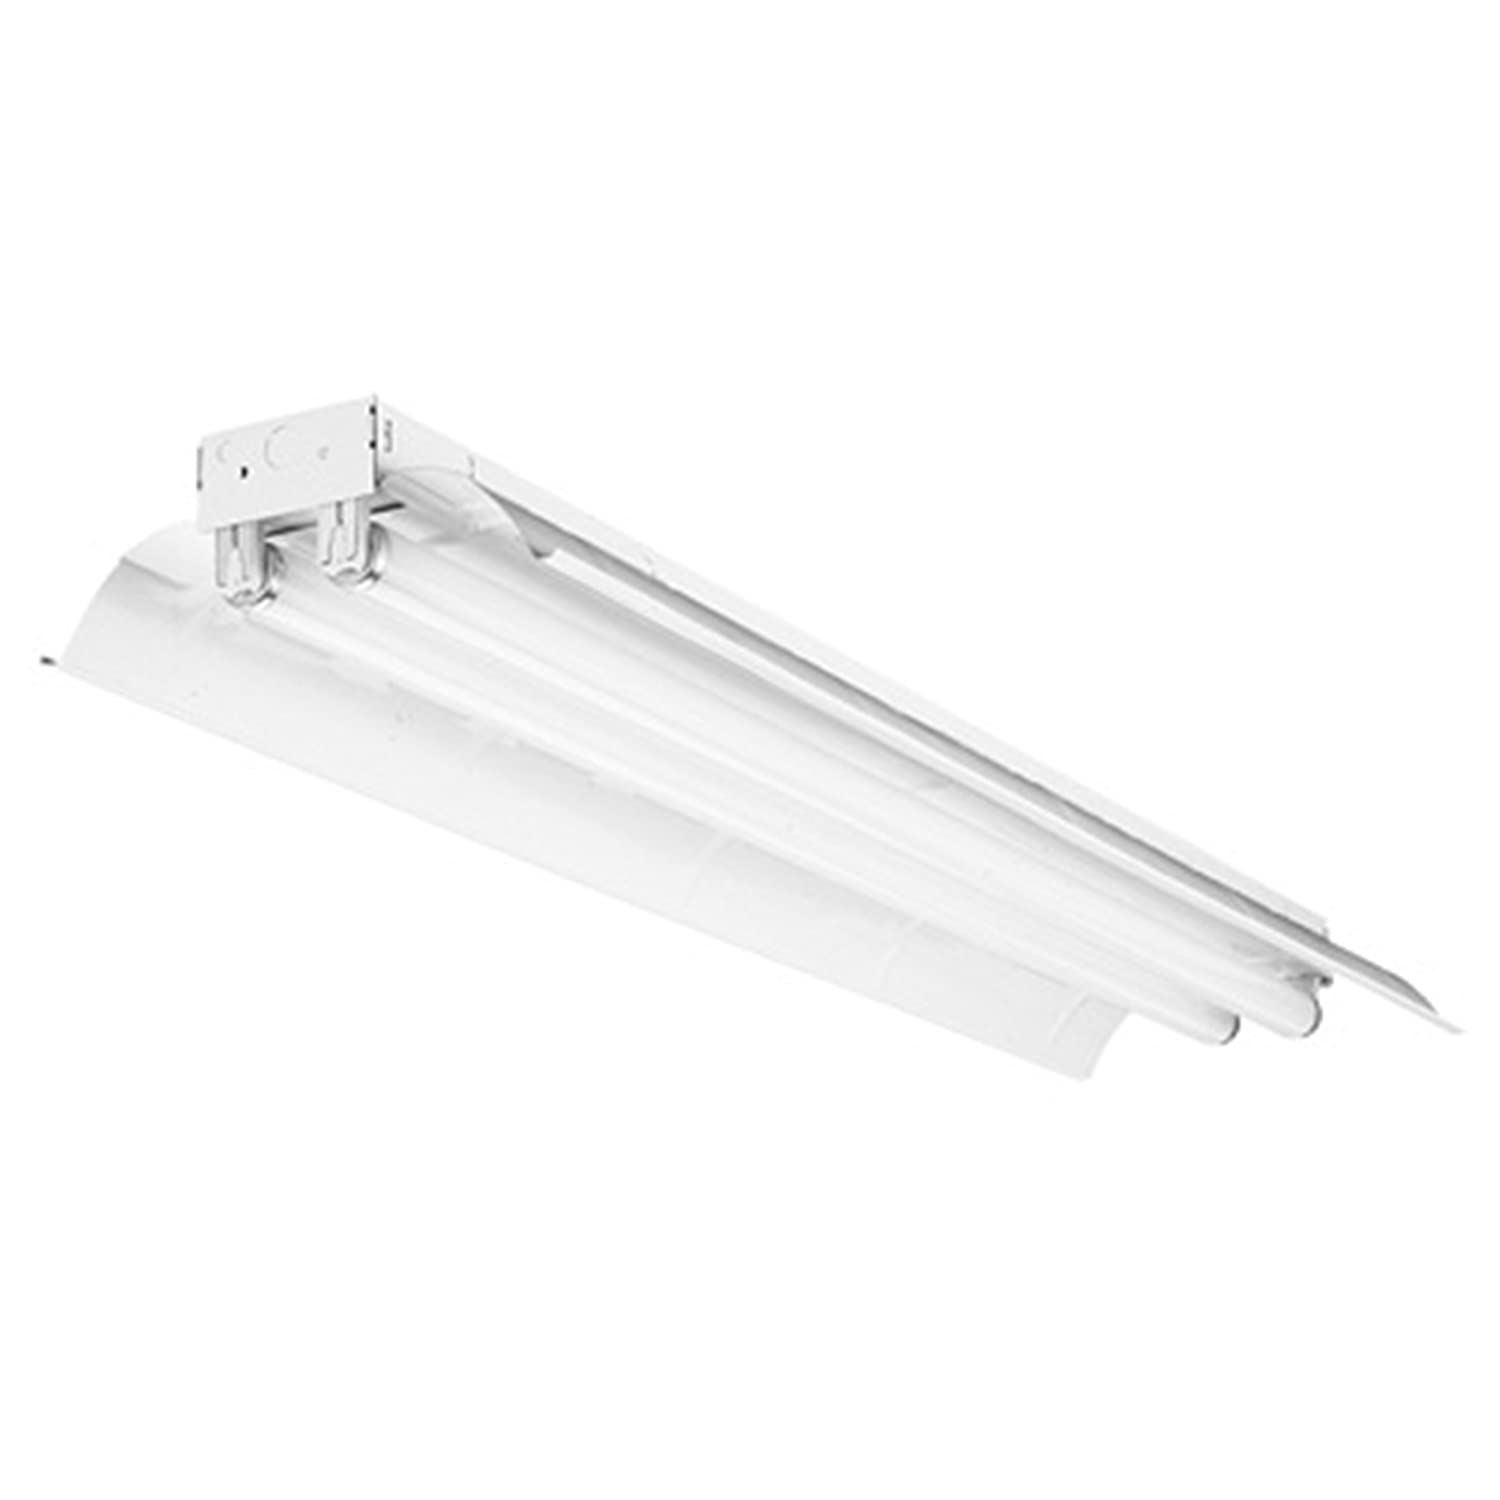 Lithonia Lighting L232 MV 4-Feet T8 General Purpose Fluorescent ...